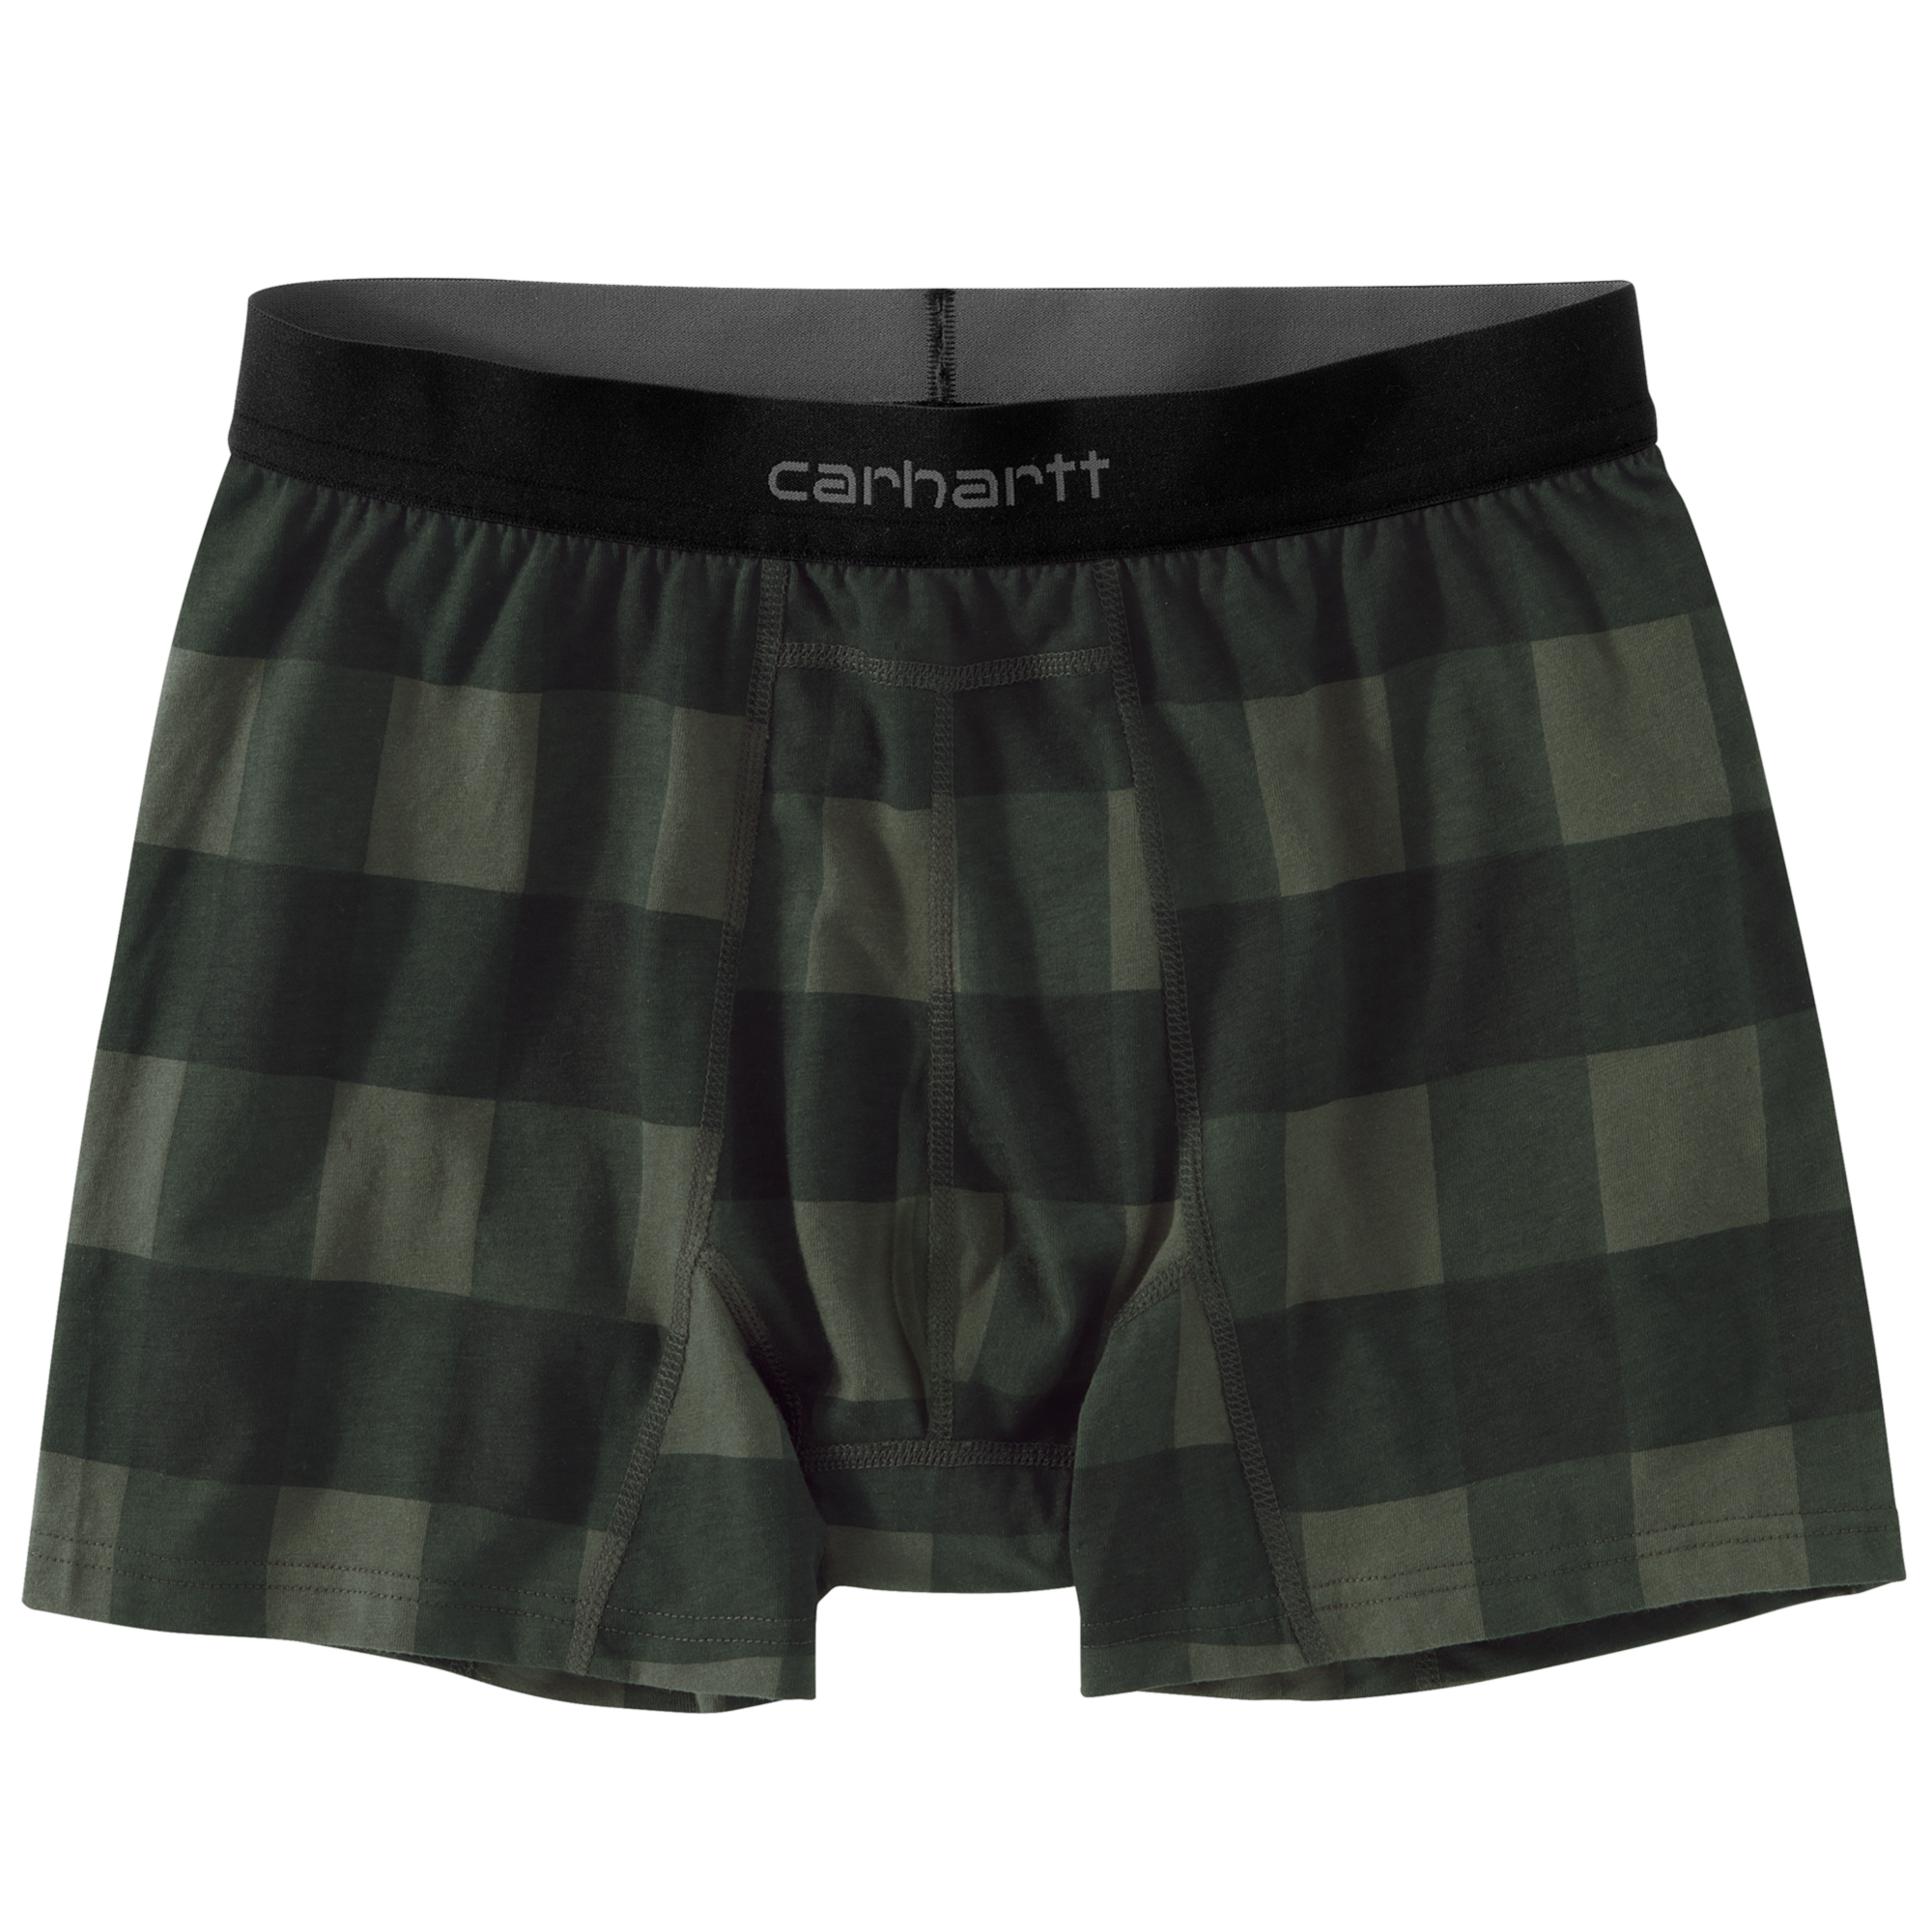 Carhartt Mens Cotton Polyester 2 Pack Boxer Brief Boxer Briefs